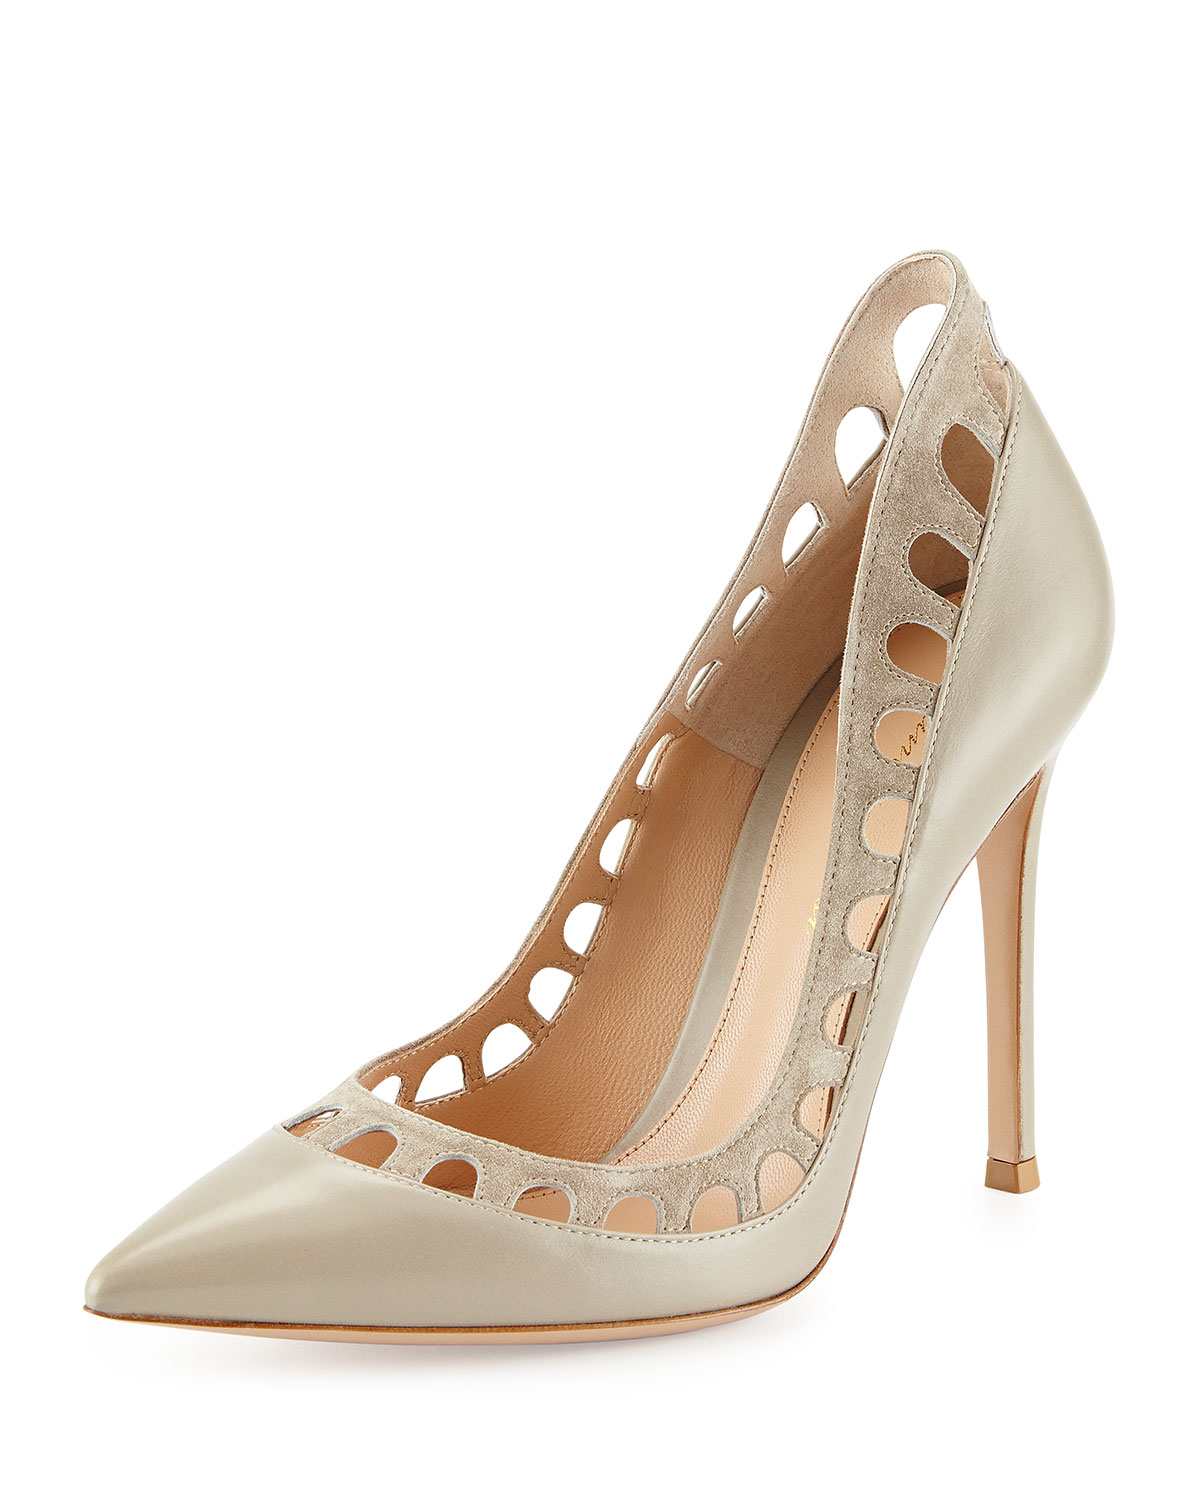 gianvito-rossi-beige-cutout-collar-leather-pump-product-1-27152902-2-158757704-normal.jpeg